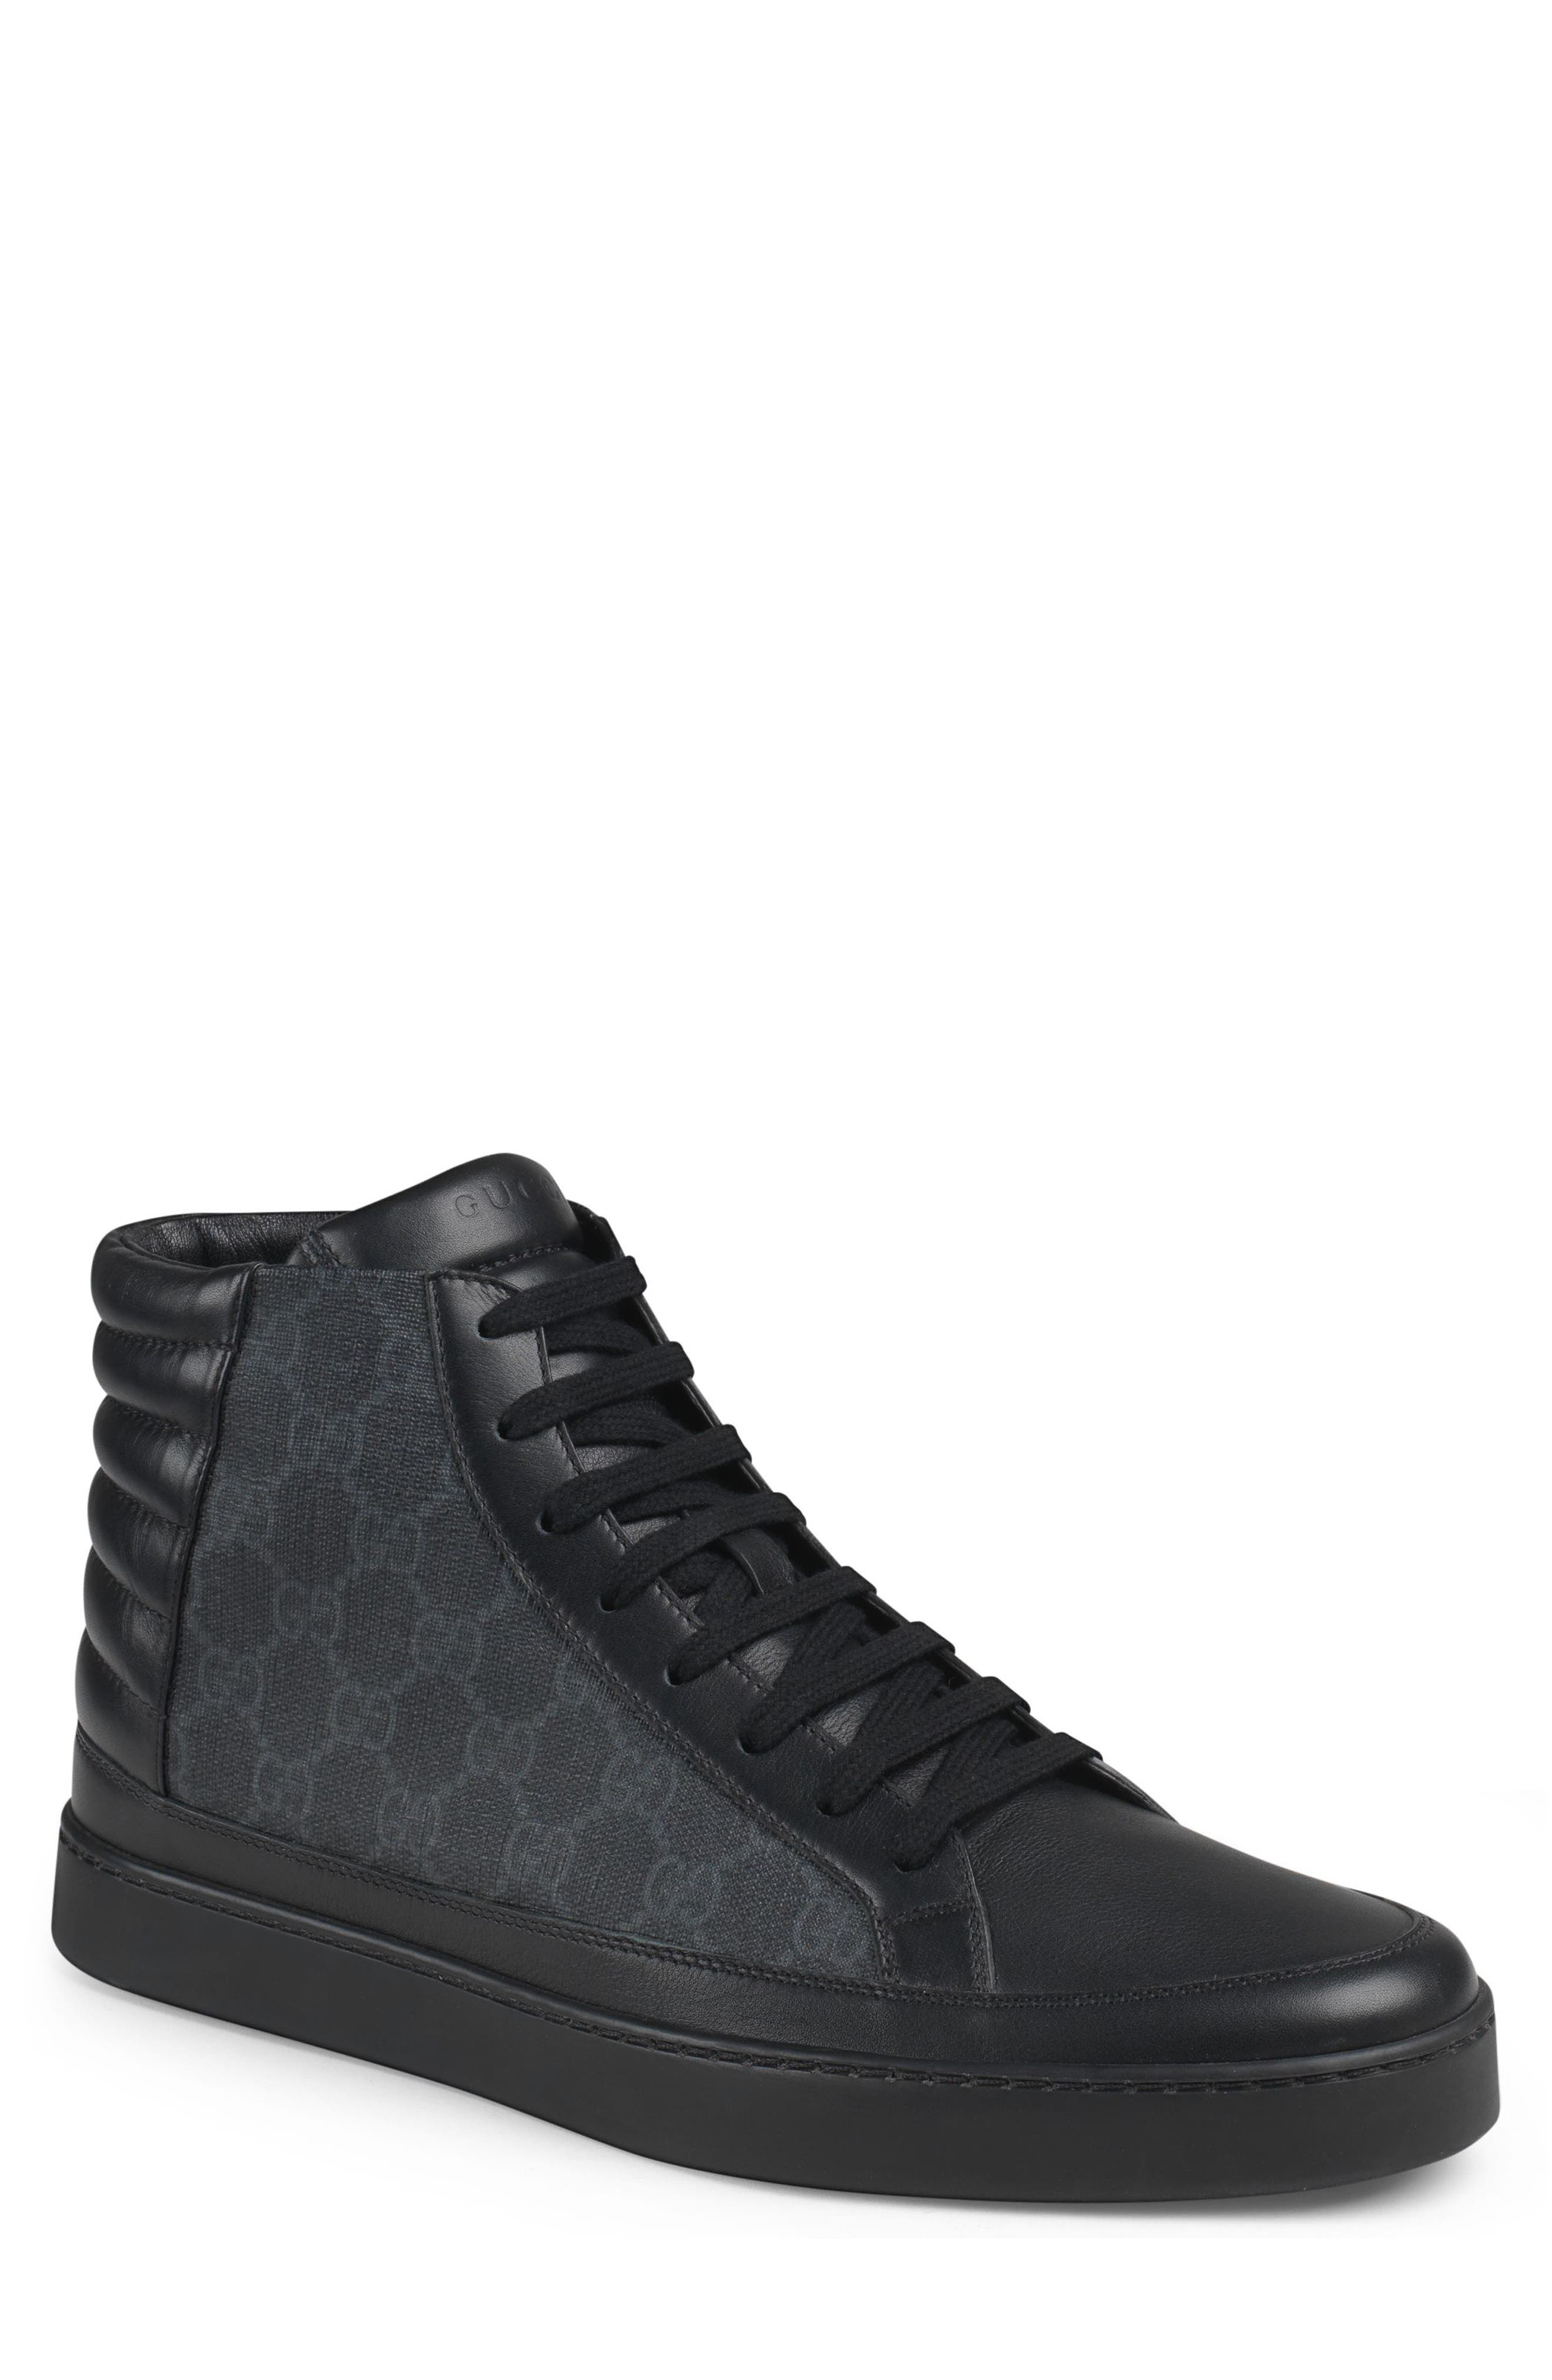 'Common' High Top Sneaker,                             Main thumbnail 1, color,                             Nero Leather